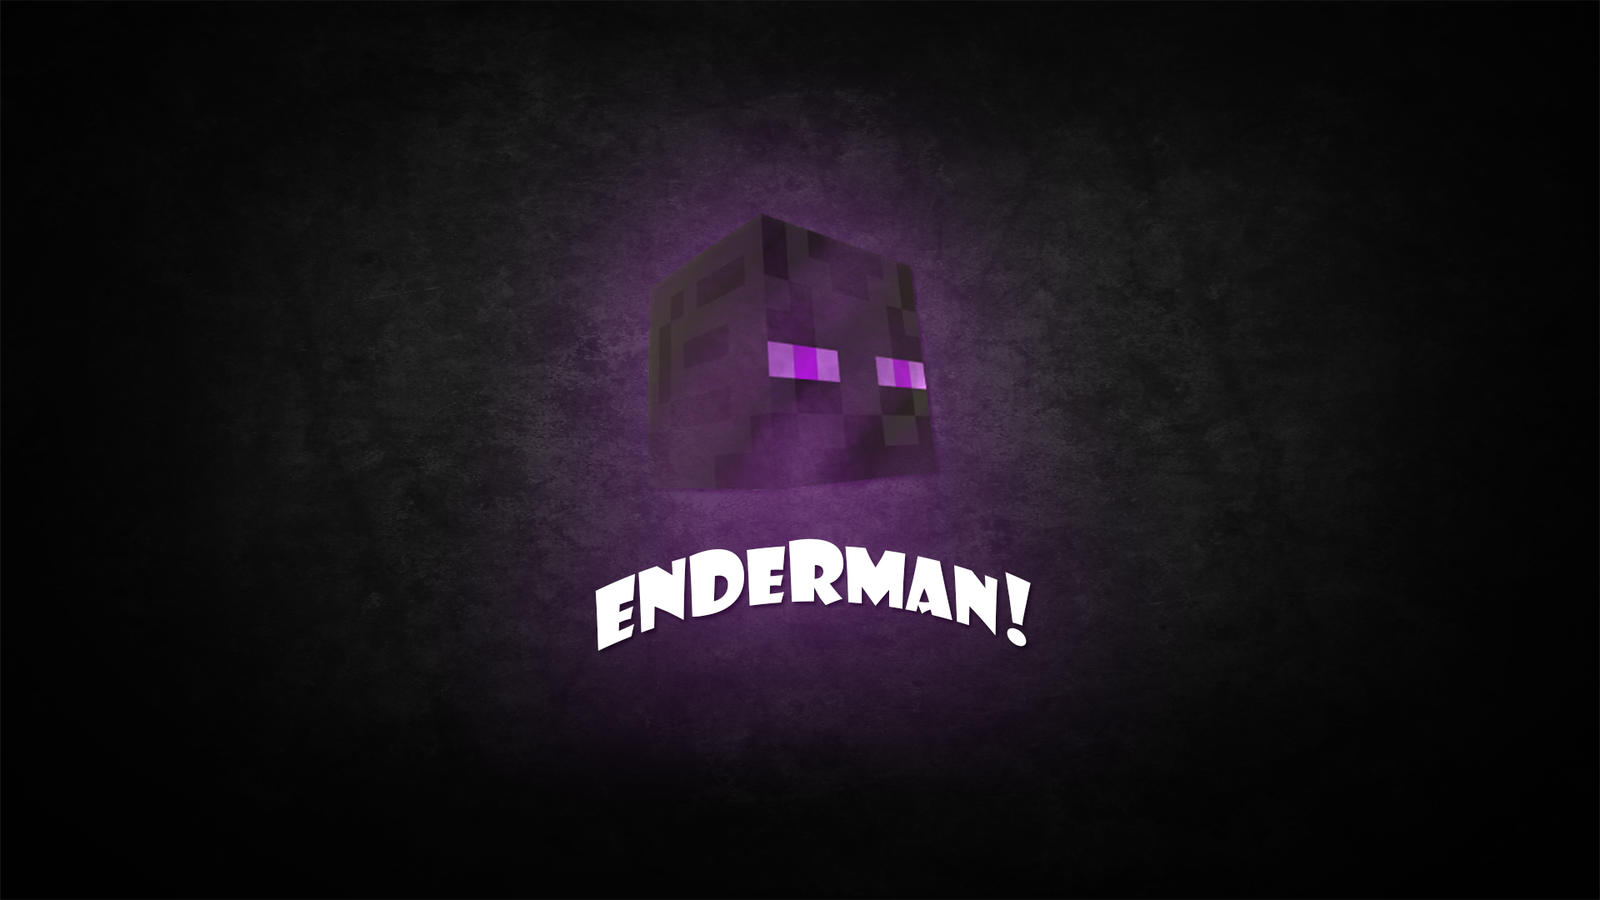 enderman minecraft wallpaper wolf - photo #7